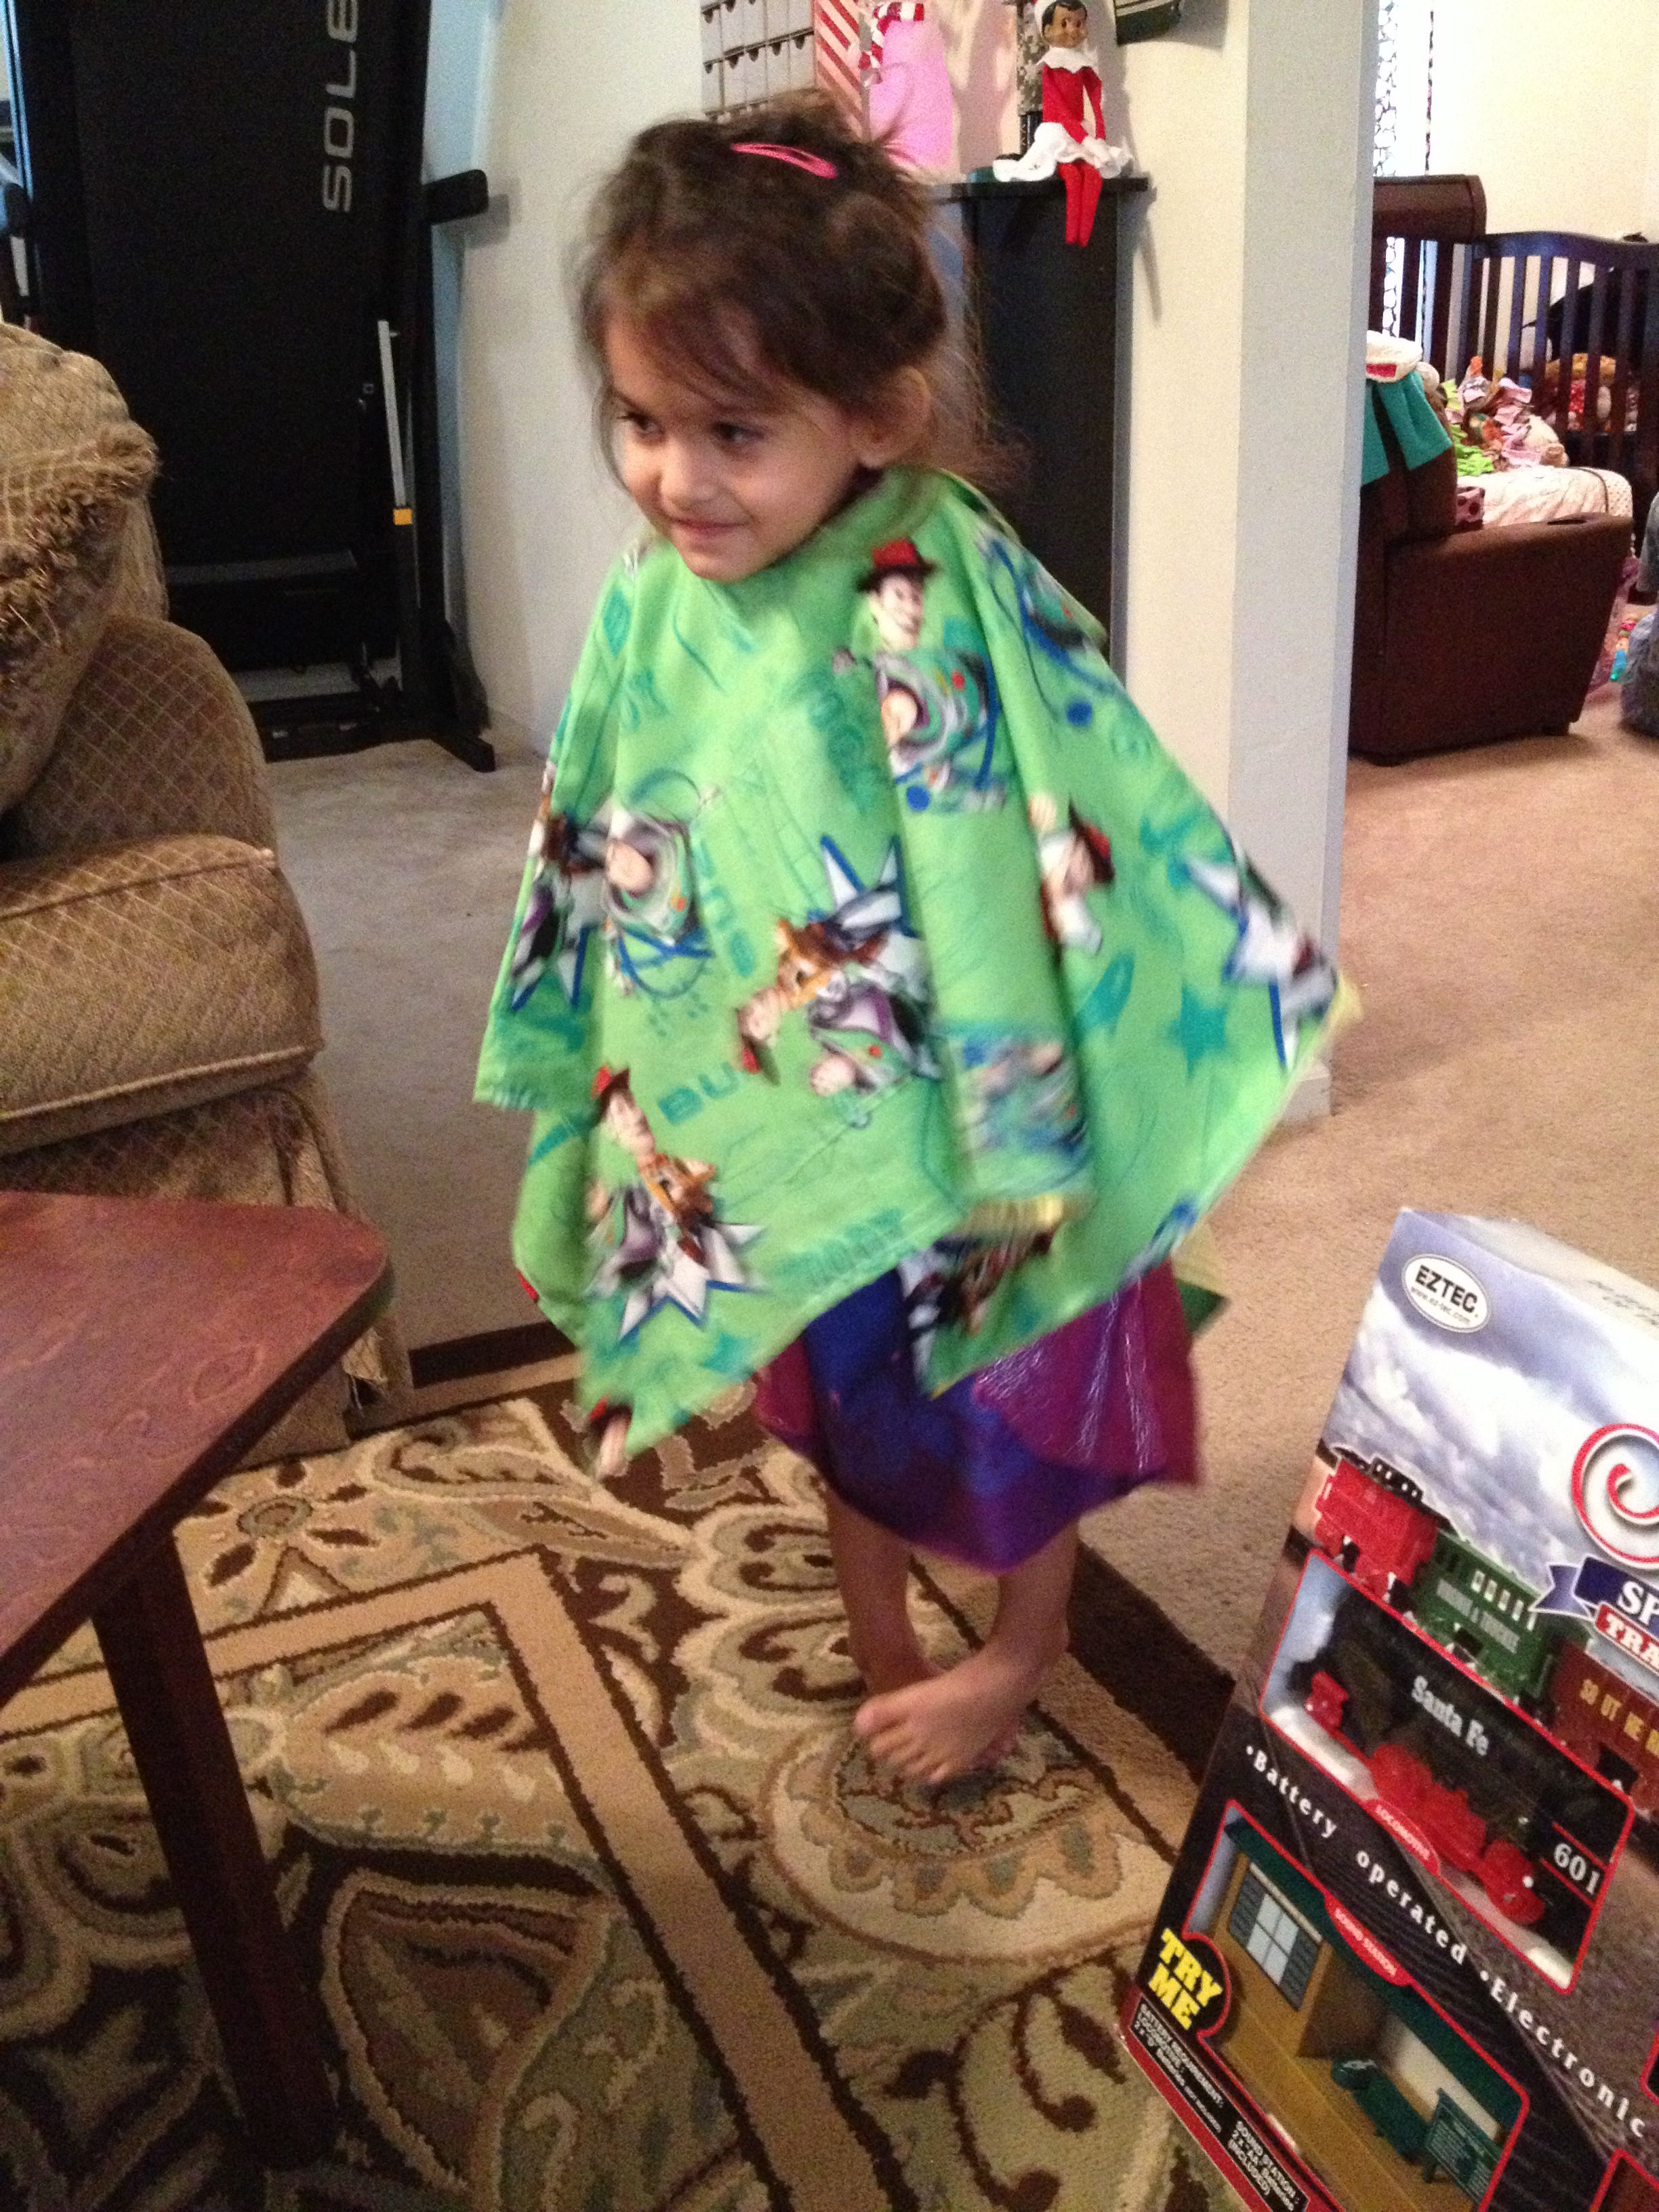 Toy story pancho made by grandma